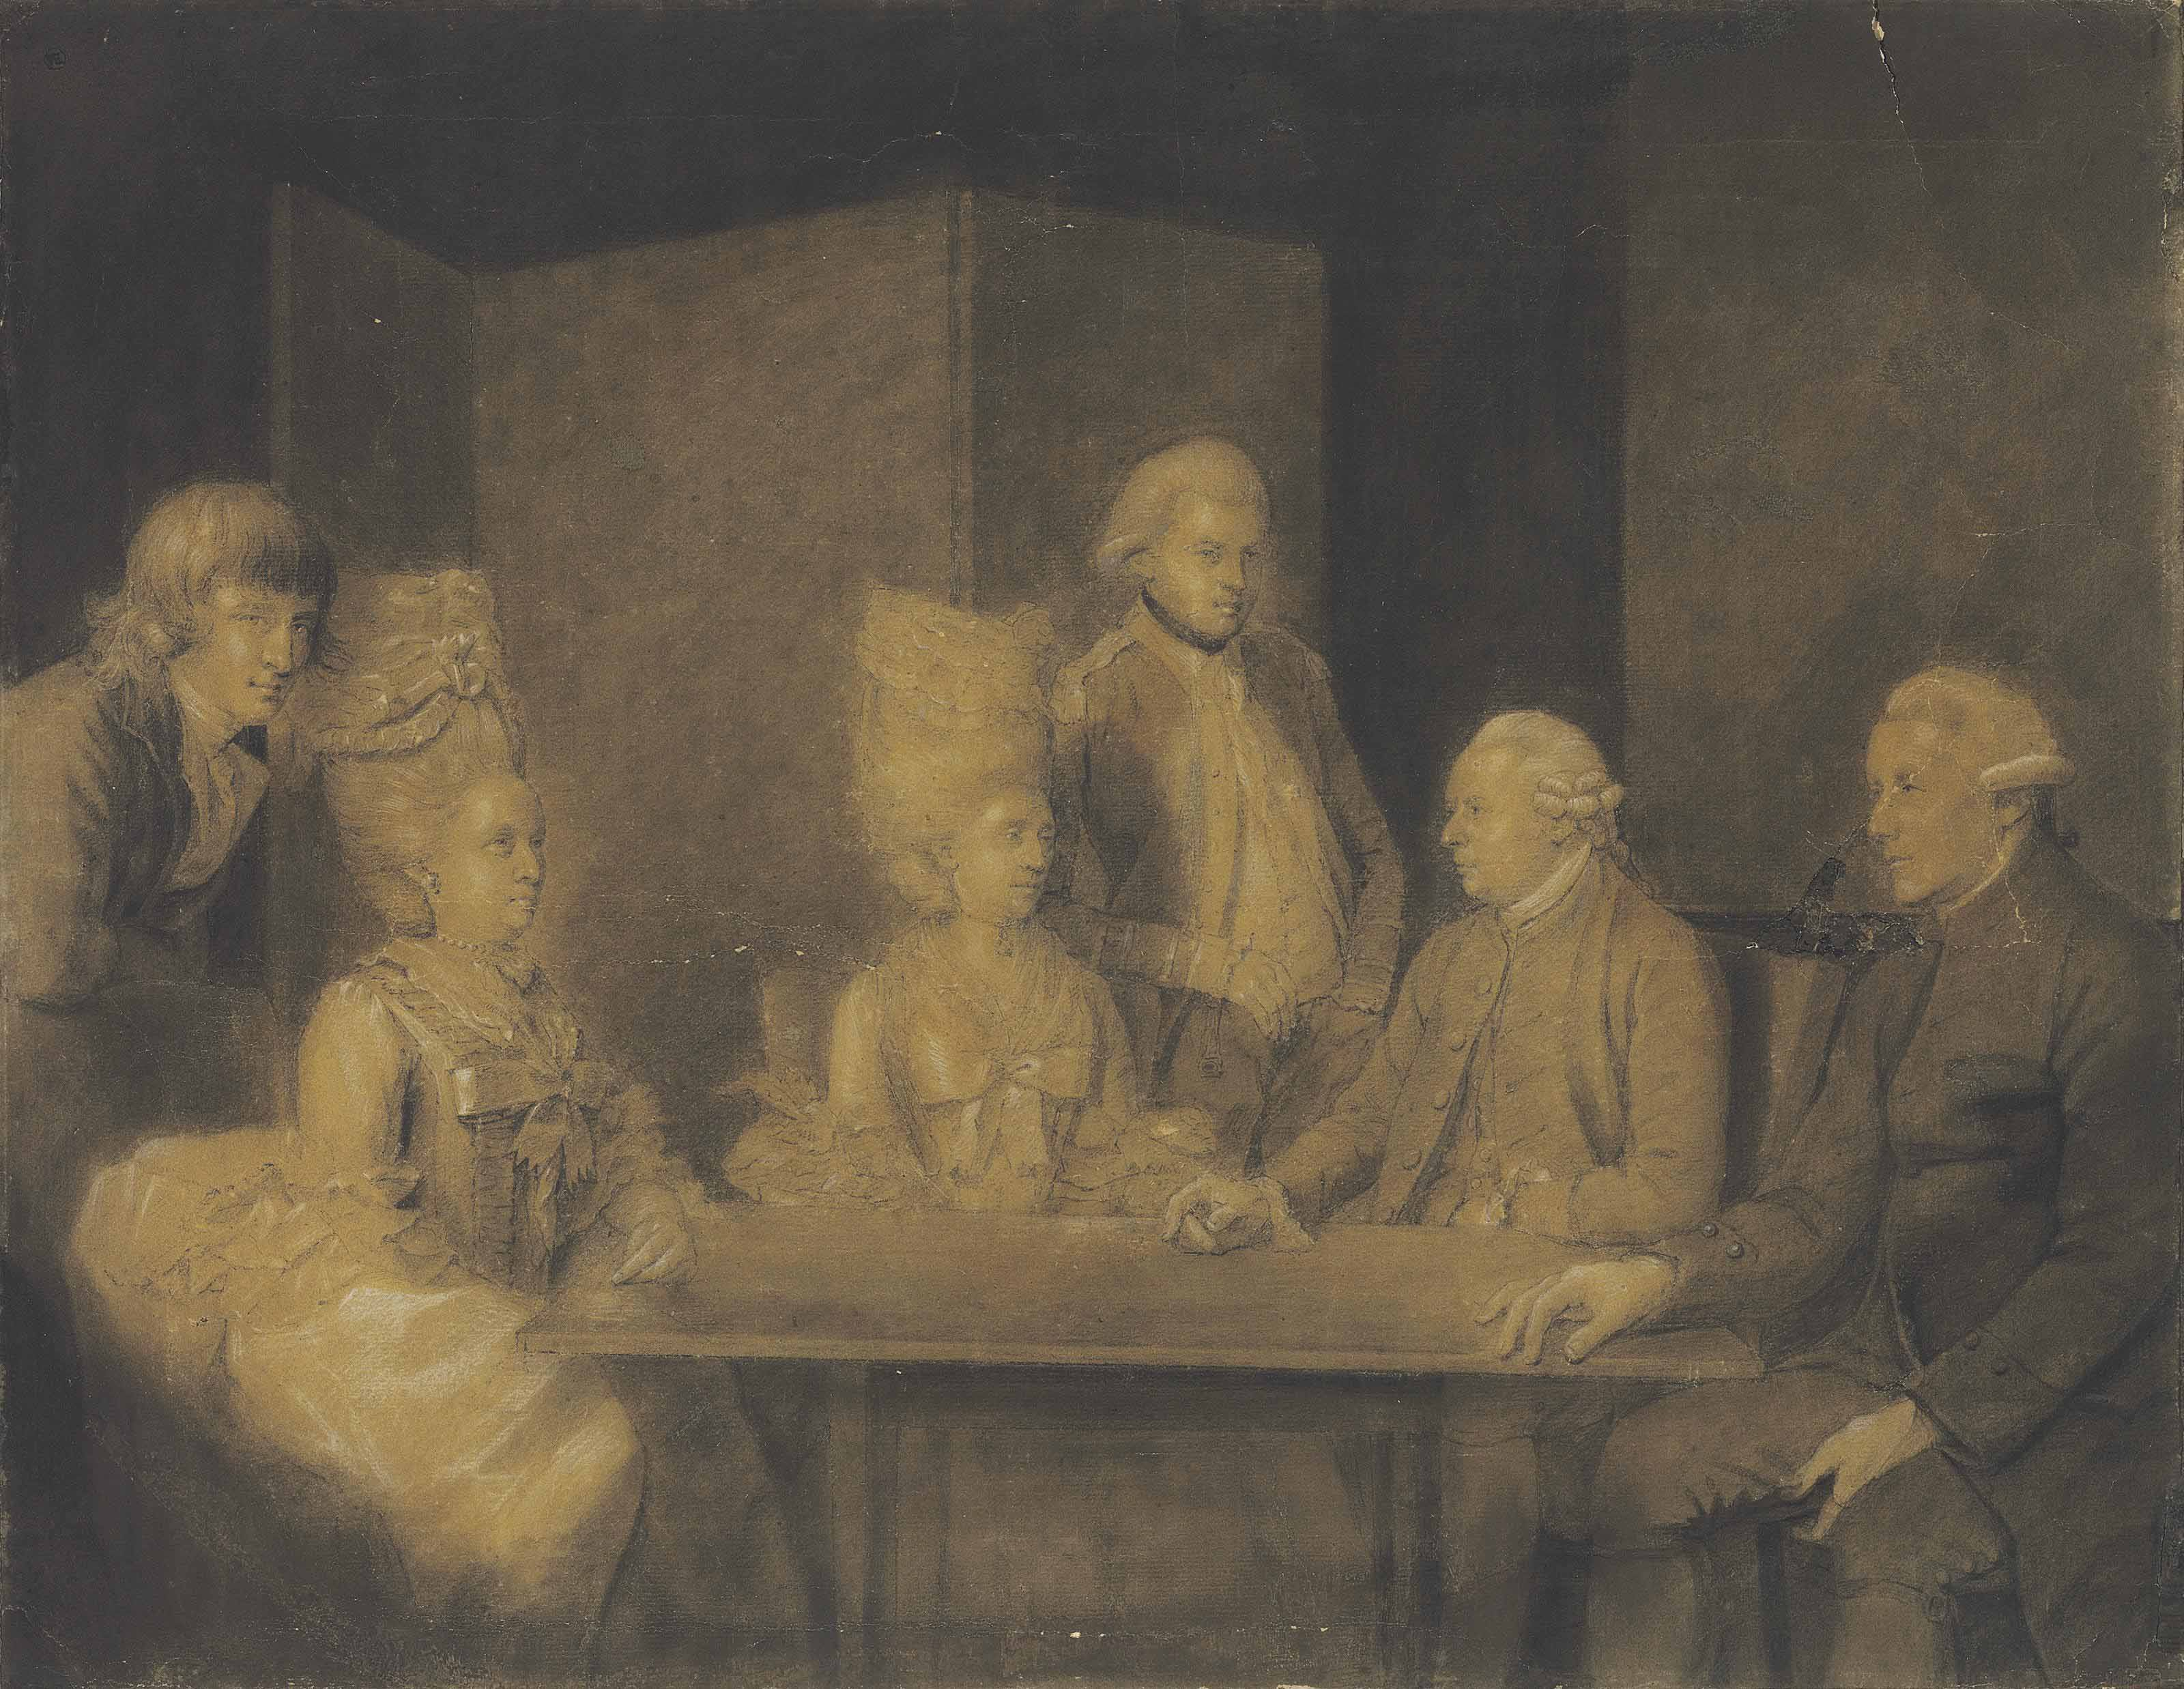 Figures seated around a table in an interior